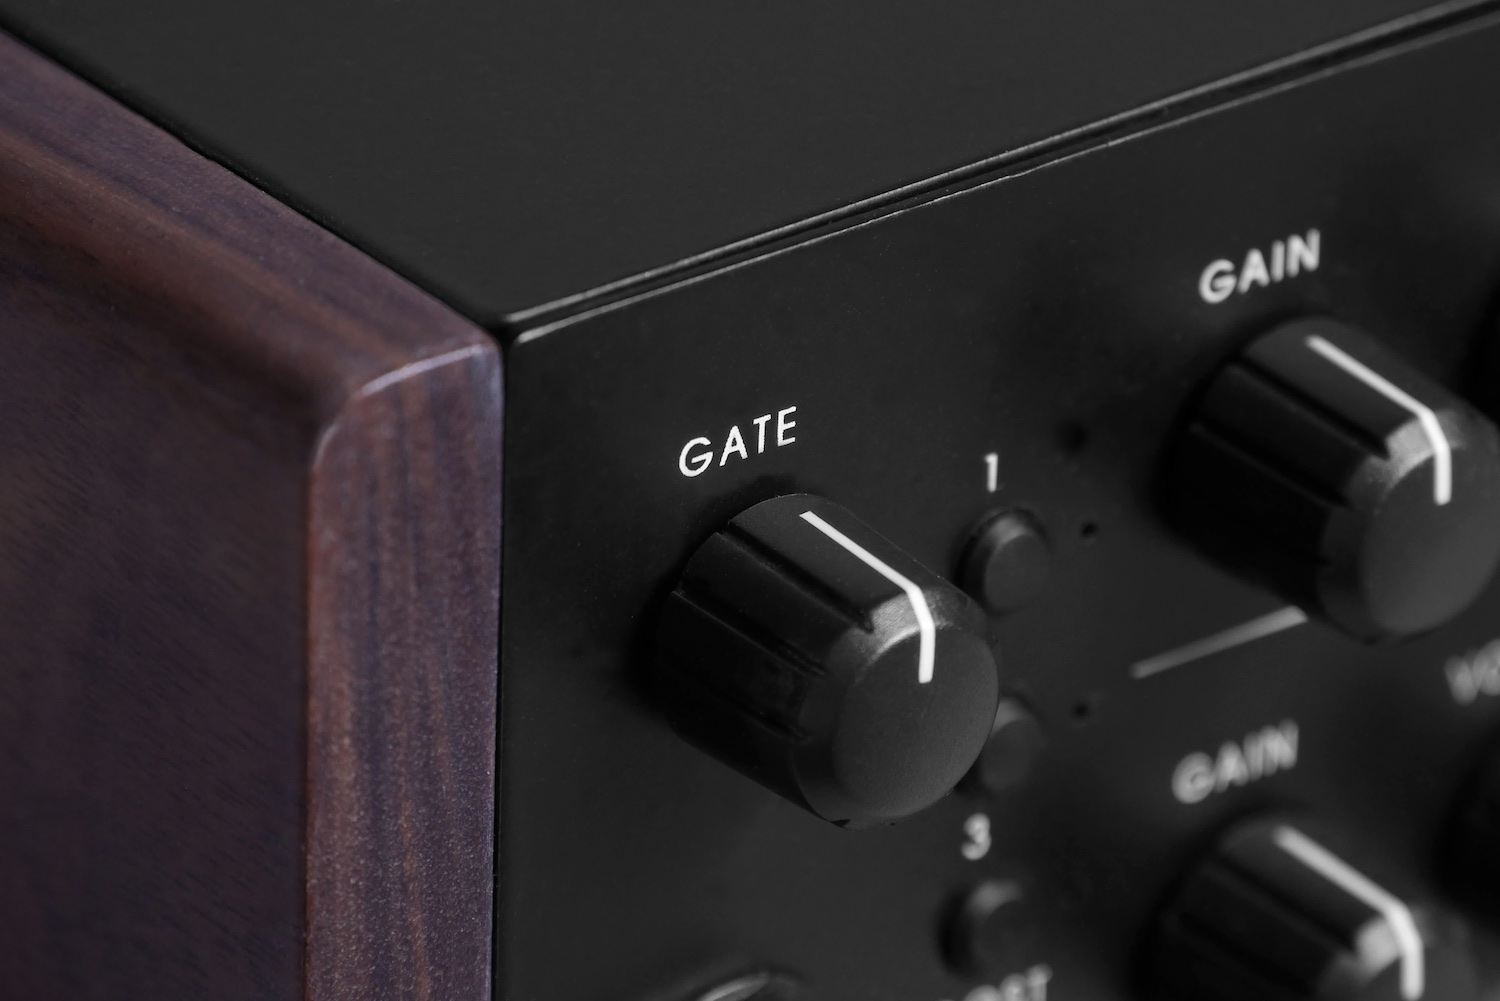 Noise Gate - Single knob controlled noise gate that triggered (side chain) by your guitar pickup output to control the distorted output signal. Since the clean guitar signal has a lot more dynamic than the heavy distortion signal, it is extremely effective and sensitive than most noise gate effect pedals.